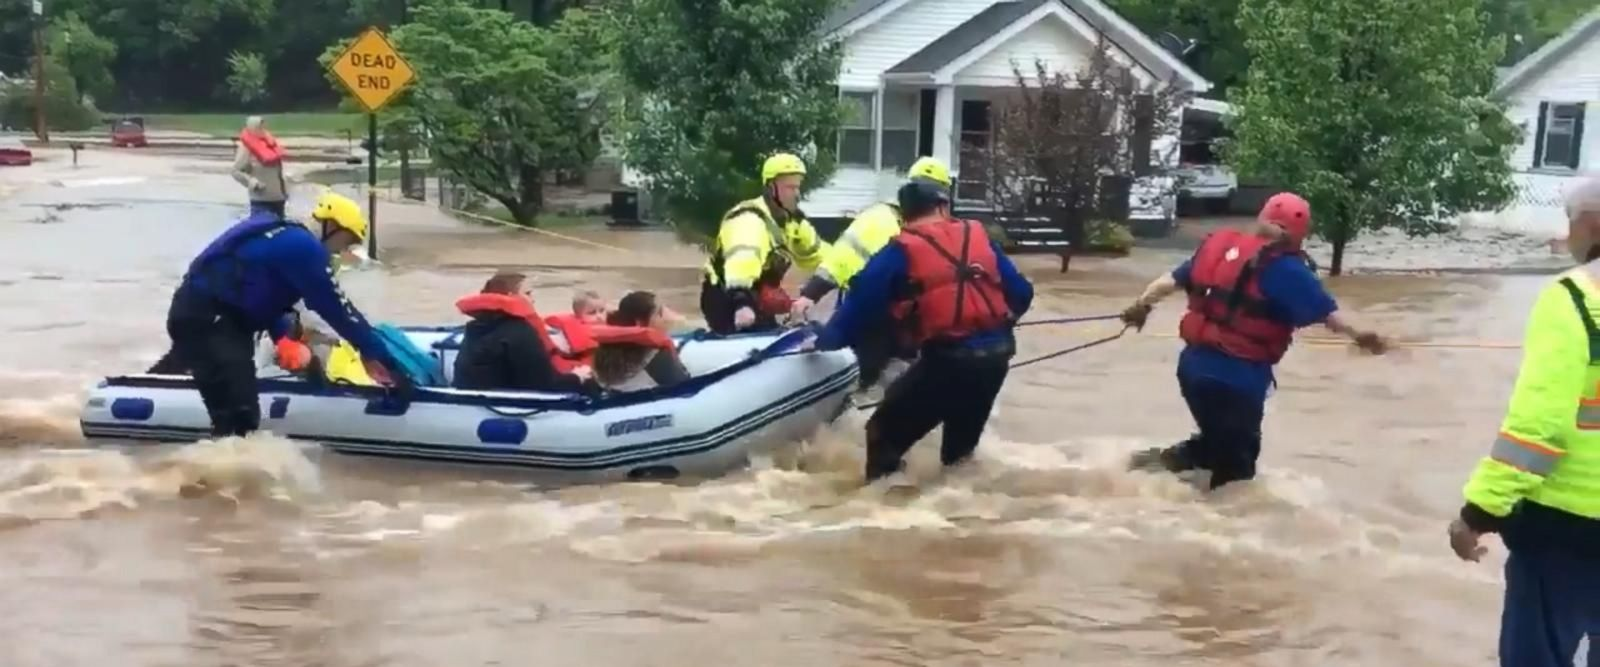 VIDEO: Flash floods sweep across the Midwest